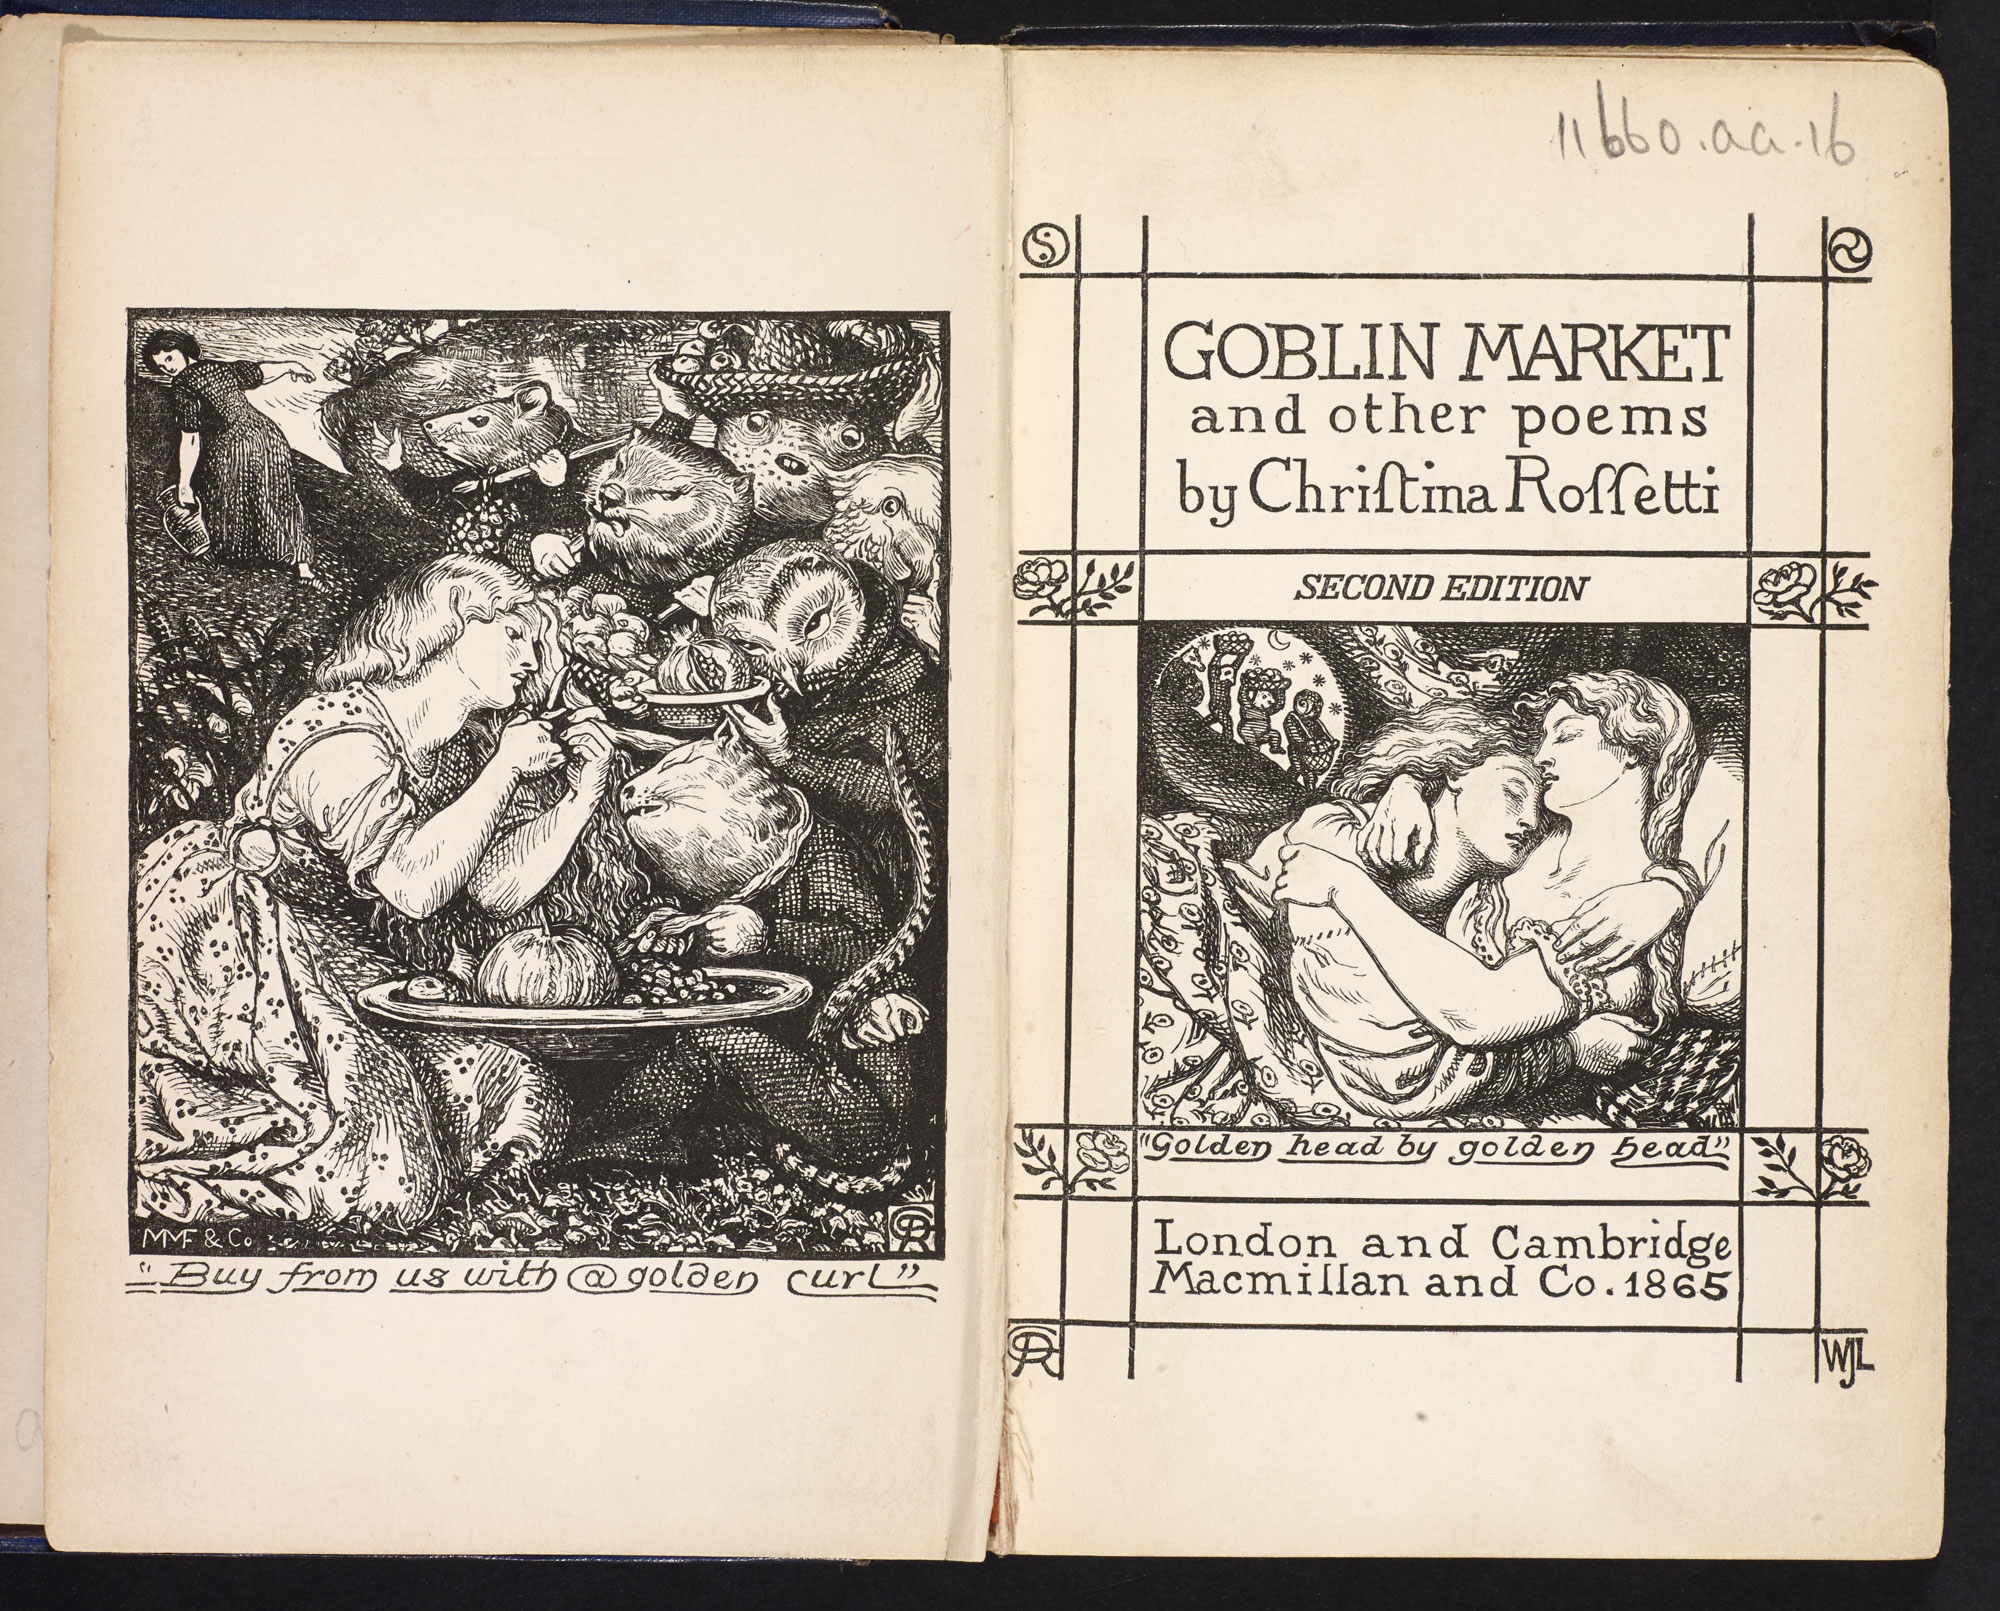 Second edition of Goblin Market by Christina Rossetti, with original covers [page: frontispiece and title page]